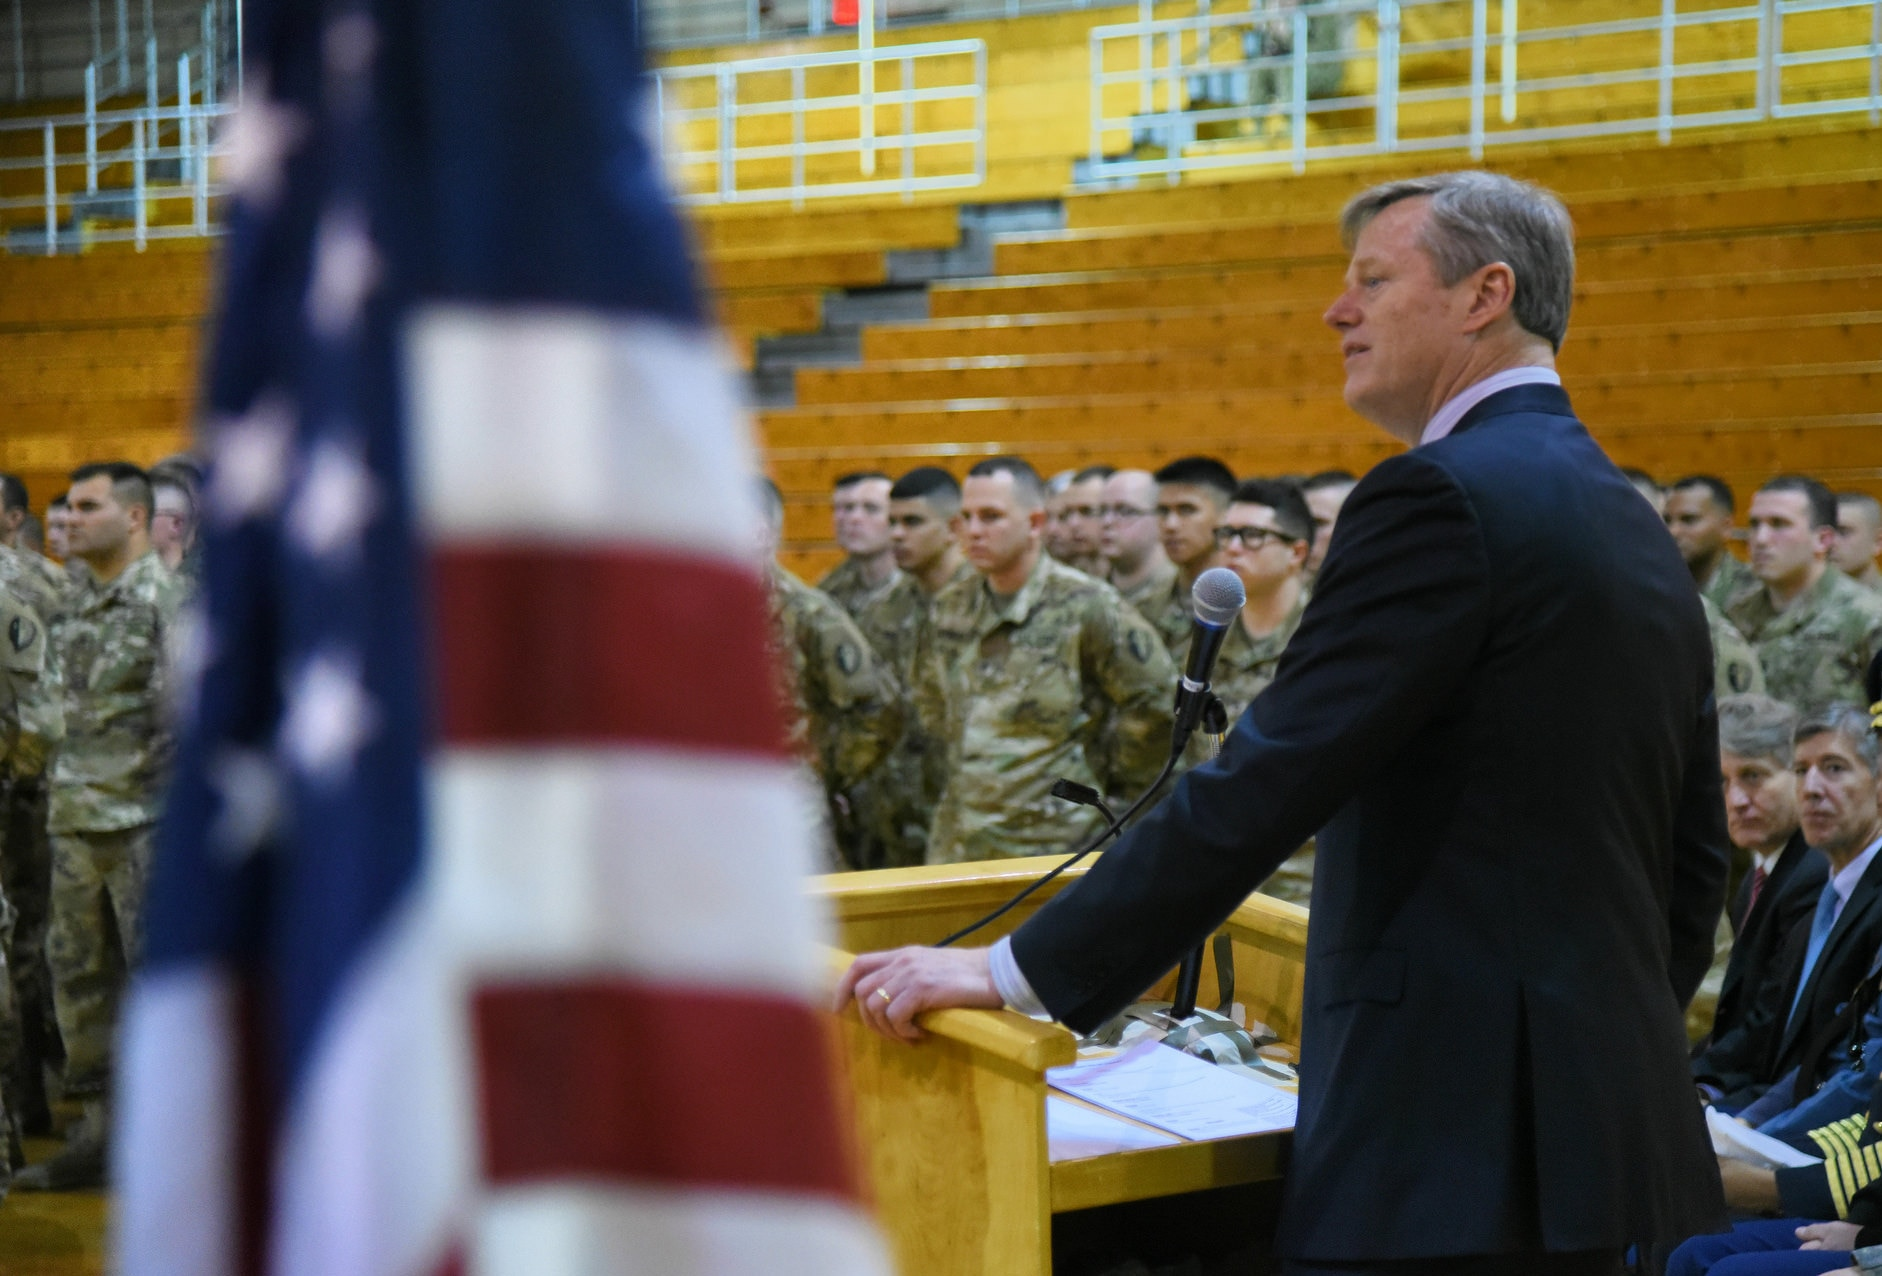 Governor Baker addresses the 181st Infantry Sendoff at UMass Amherst.